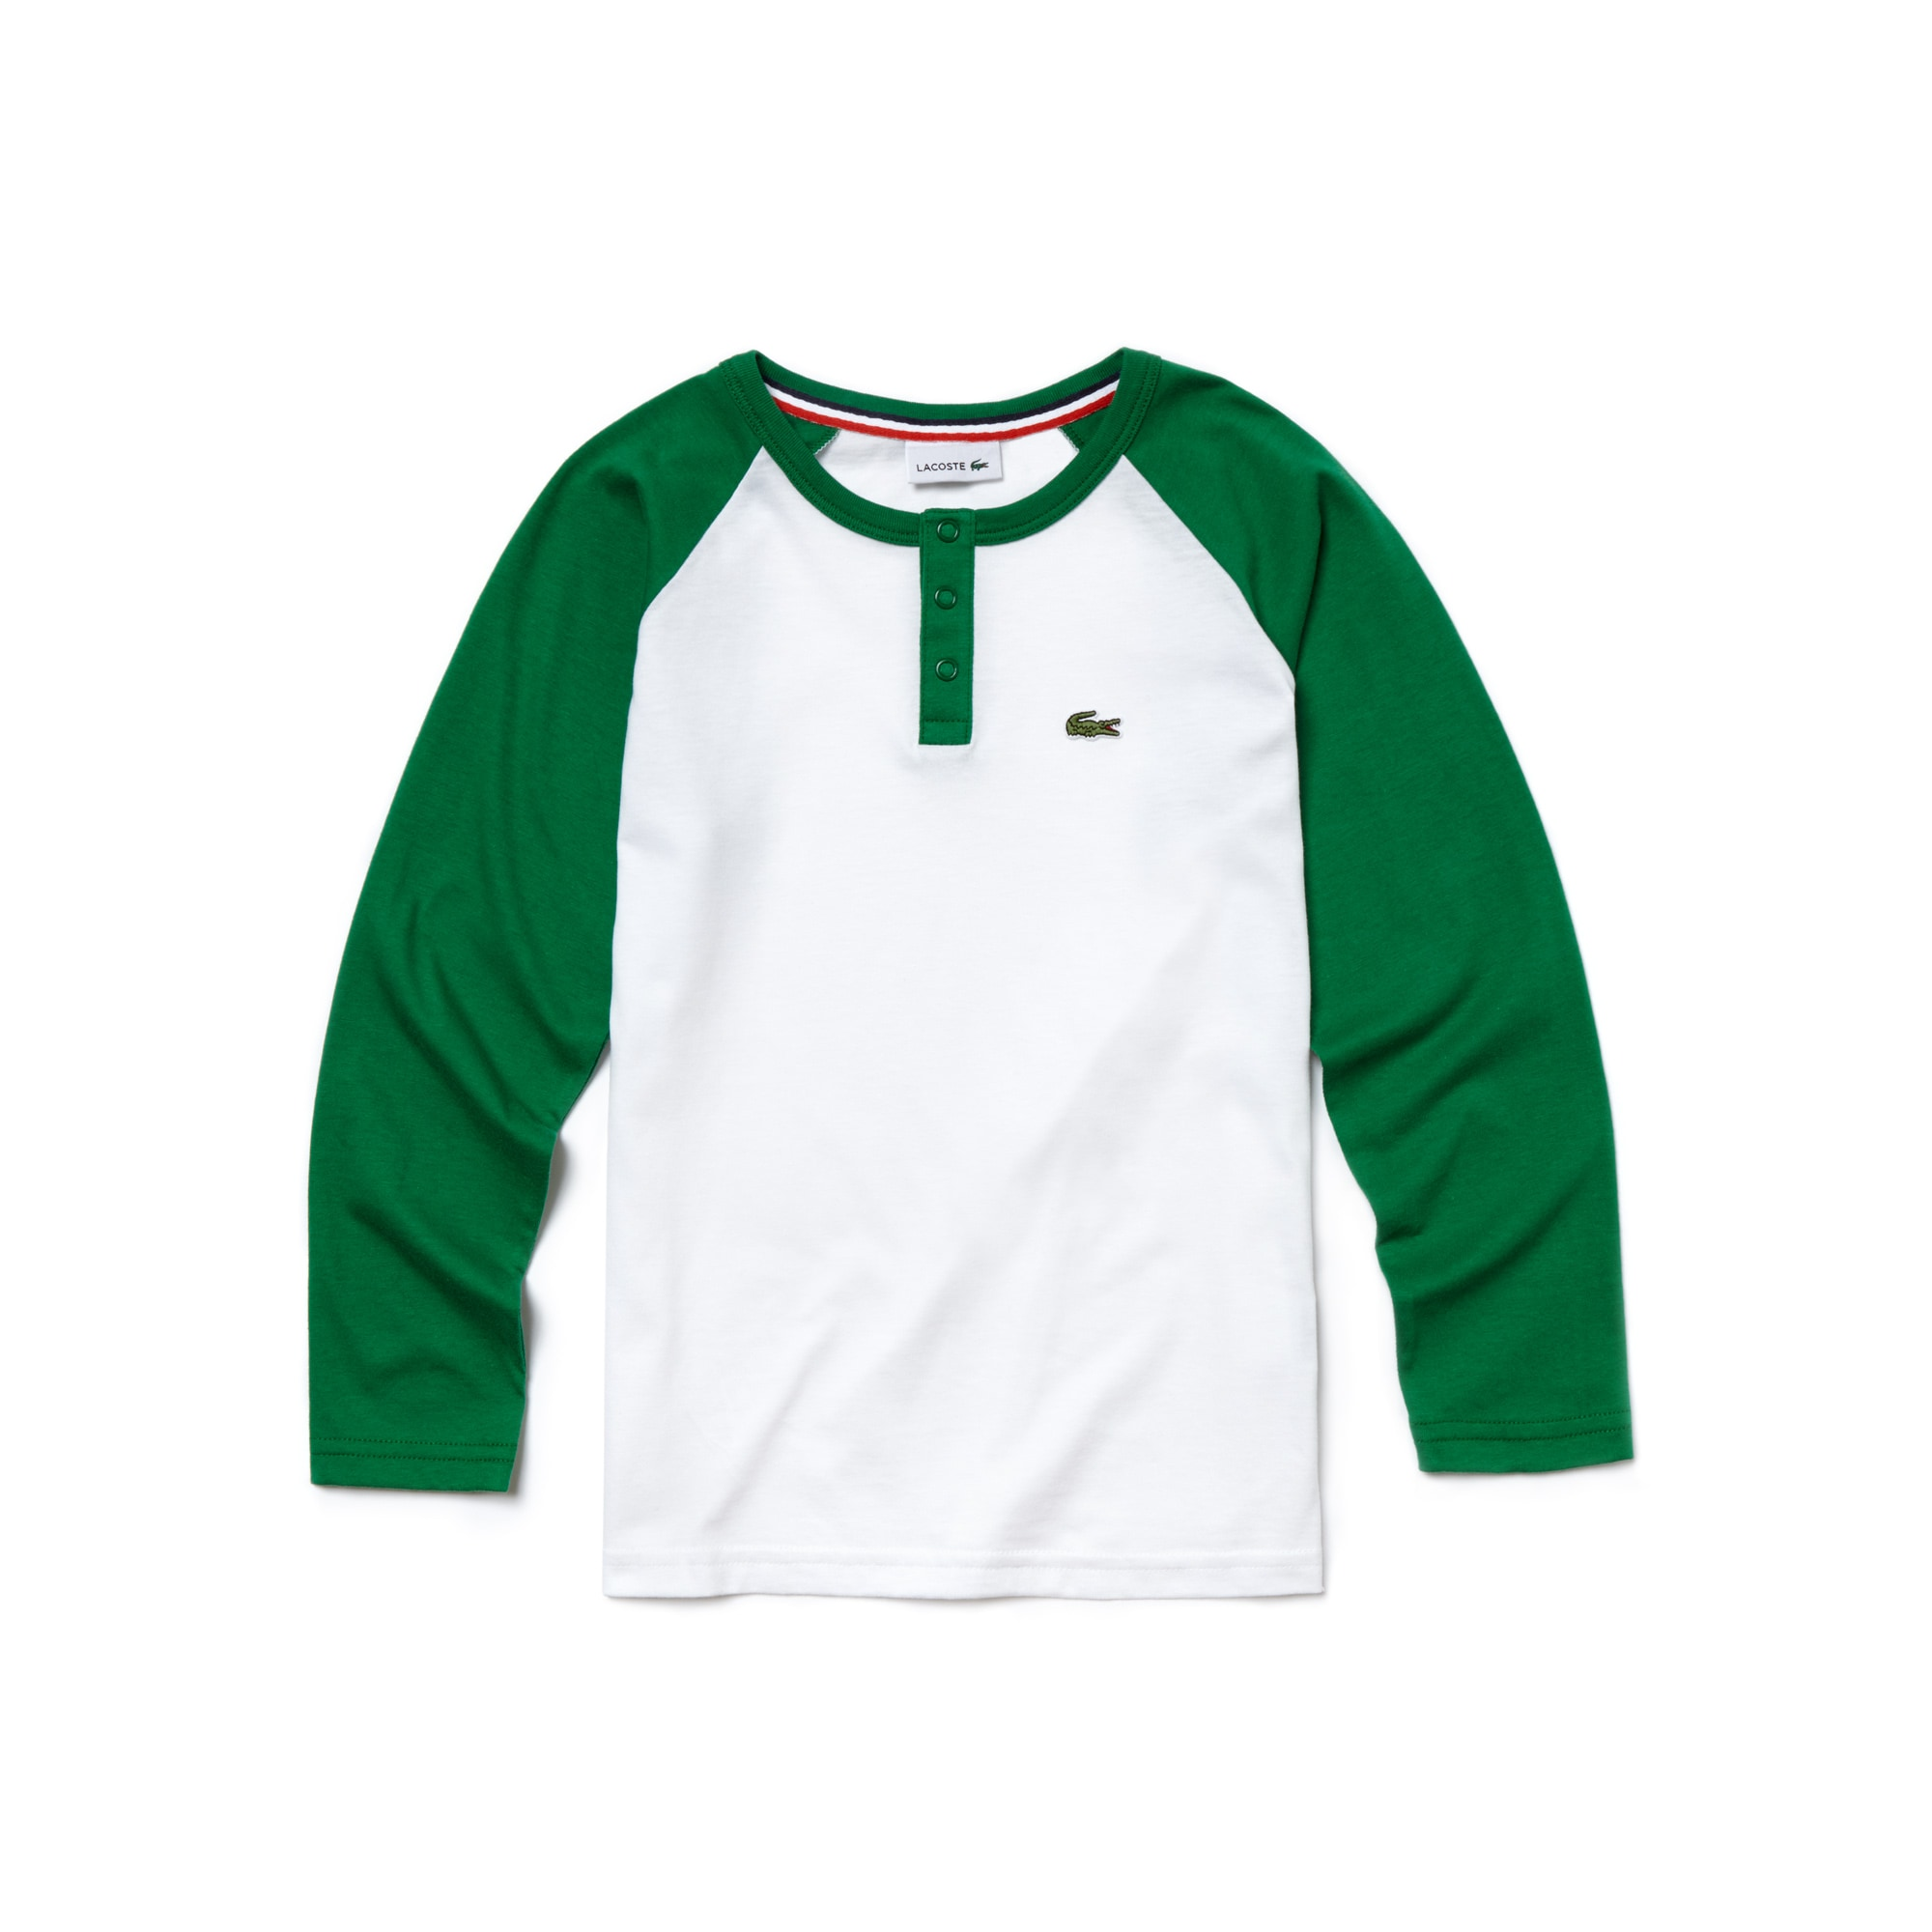 Boy's Baseball Cotton Colorblock T-Shirt